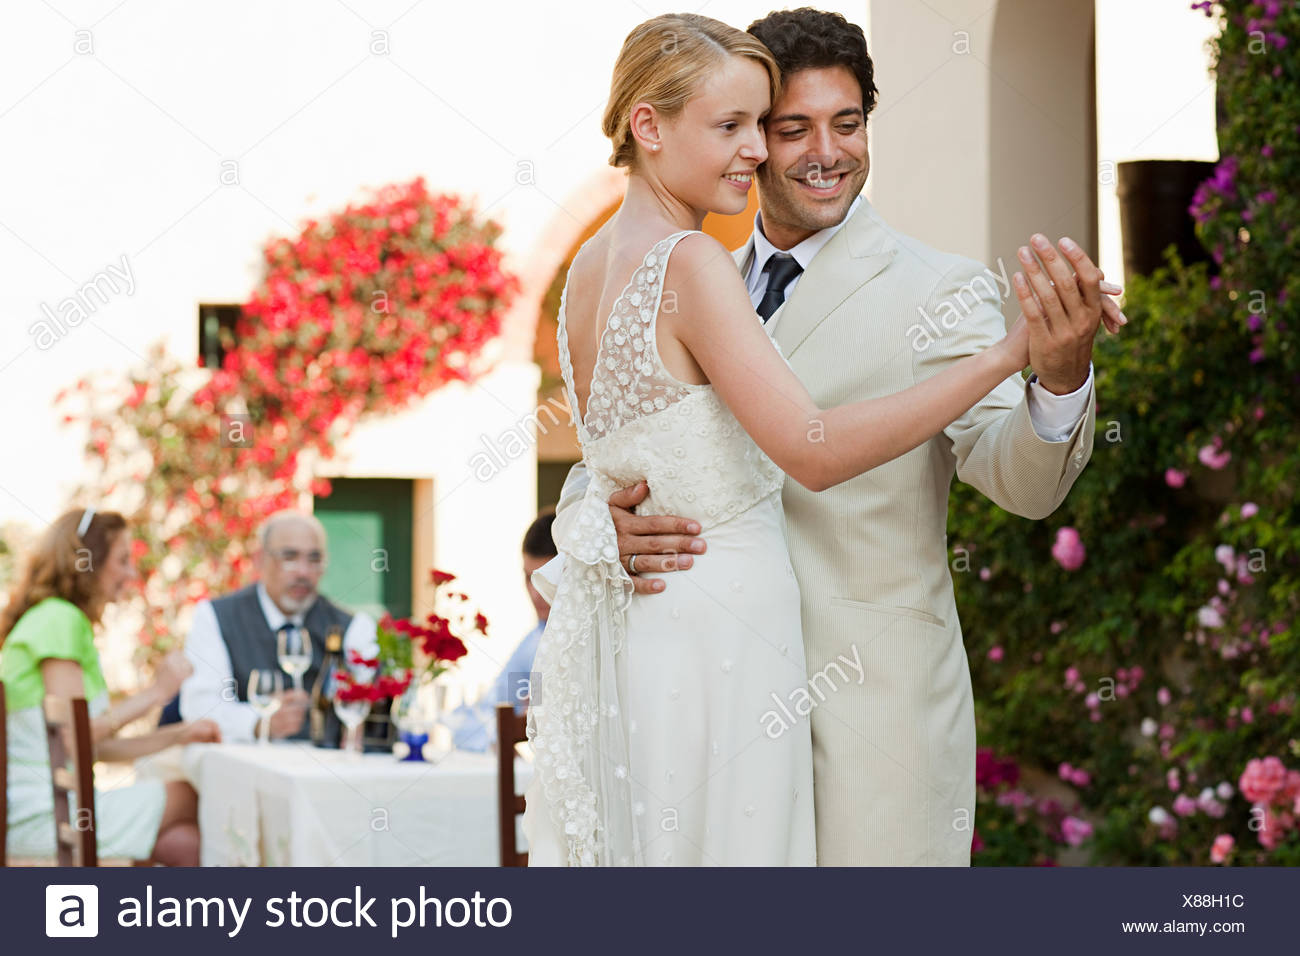 Newlyweds Dancing At Wedding Reception Stock Photo 280472120 Alamy